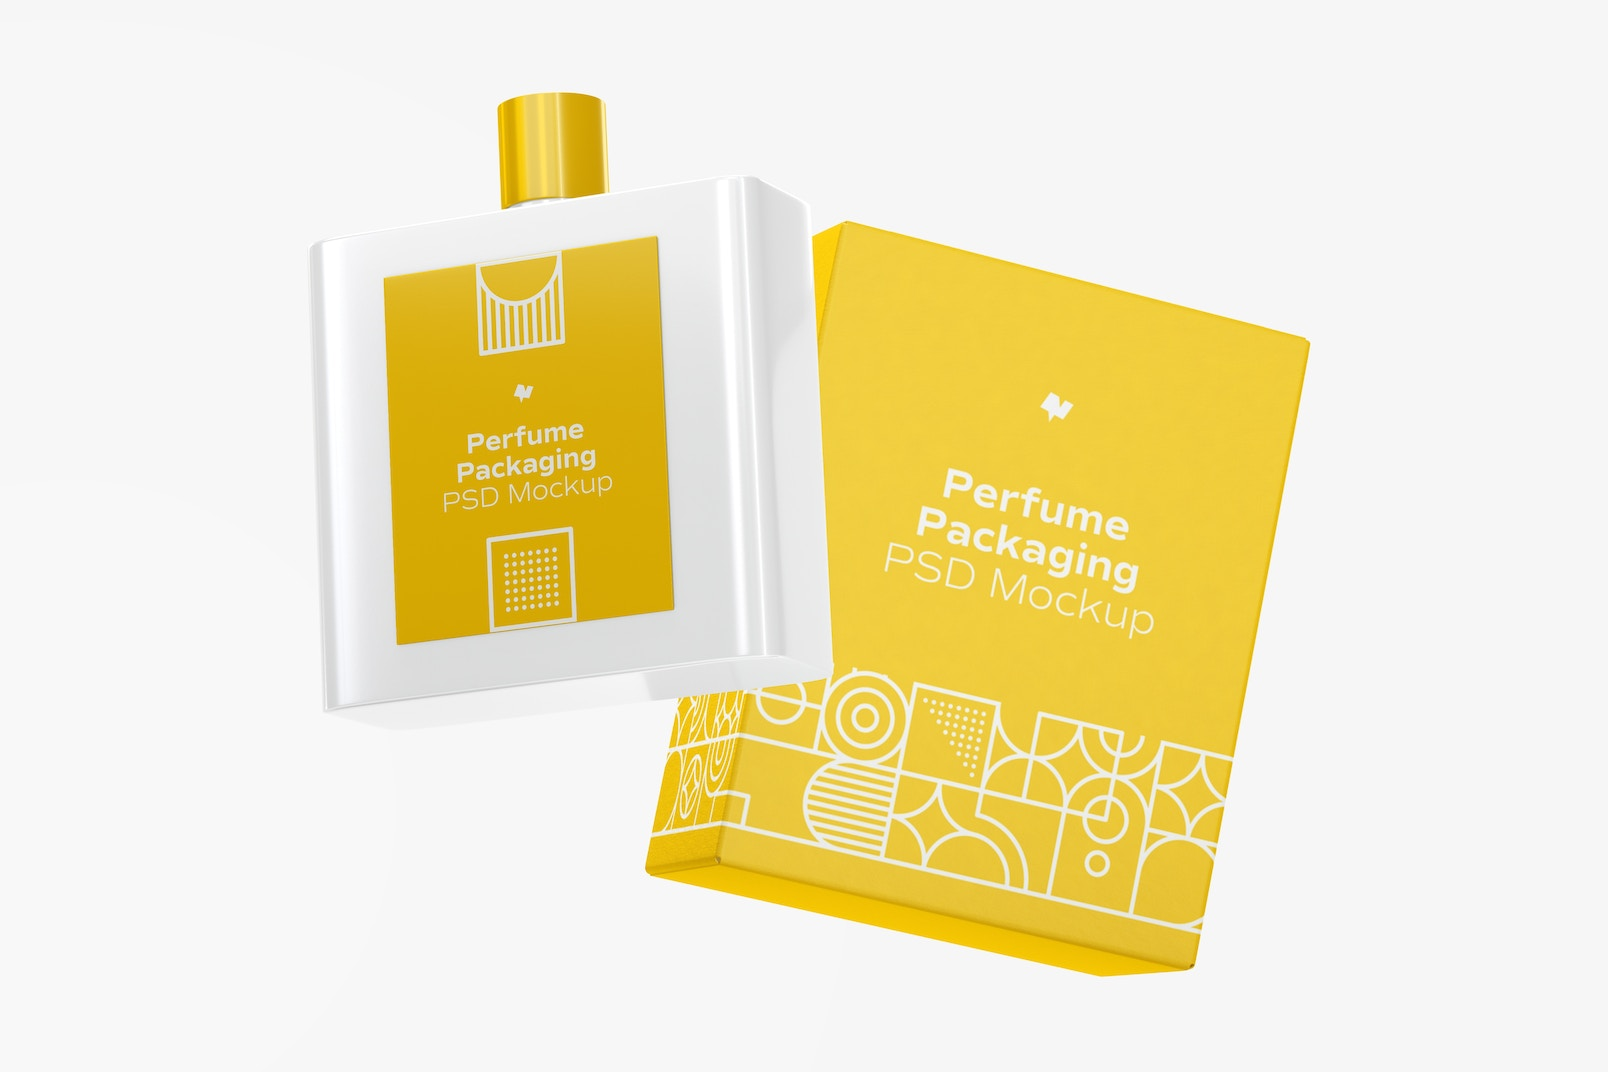 Perfume Packaging with Bottle Mockup, Floating